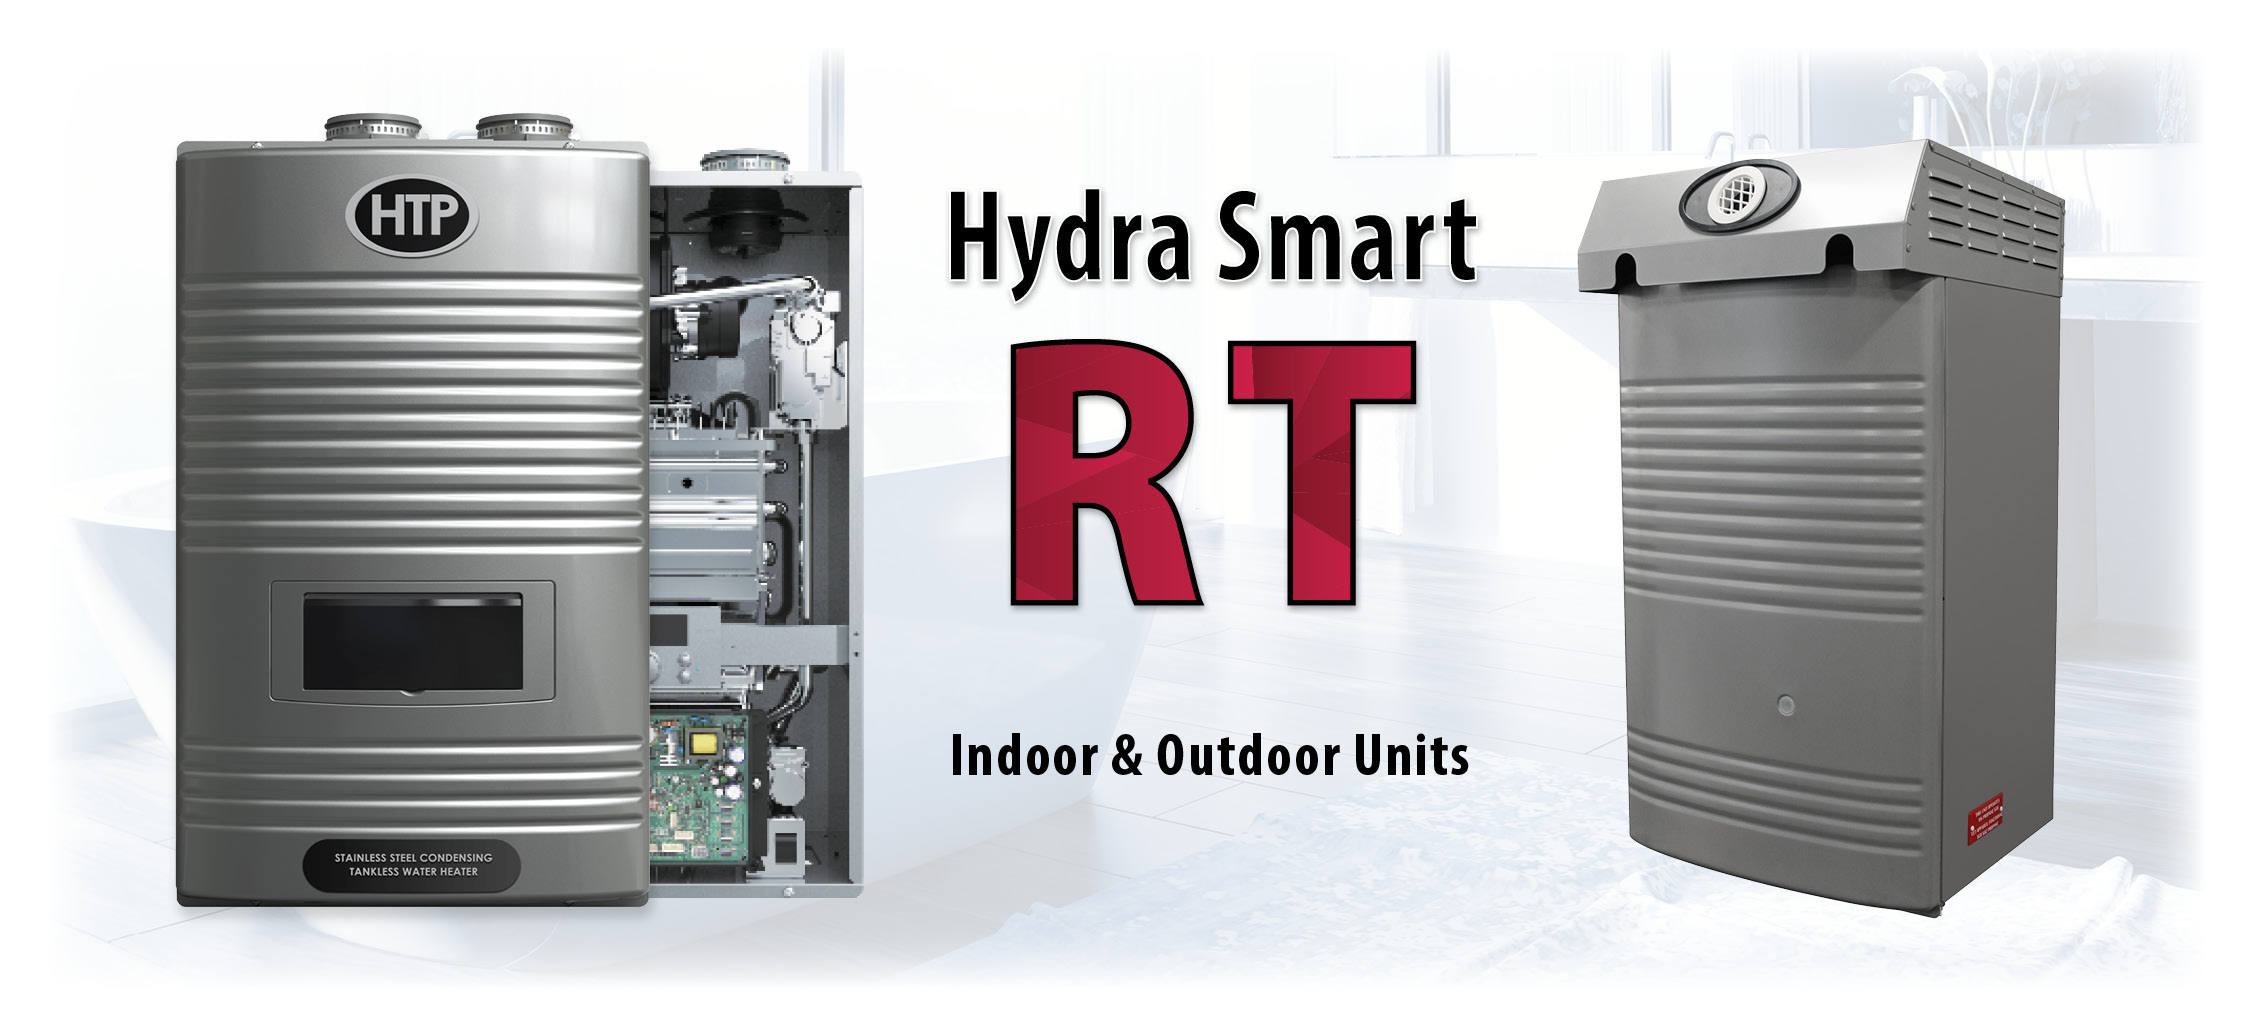 Hydra Smart Residential Condensing Gas Tankless Water Heater